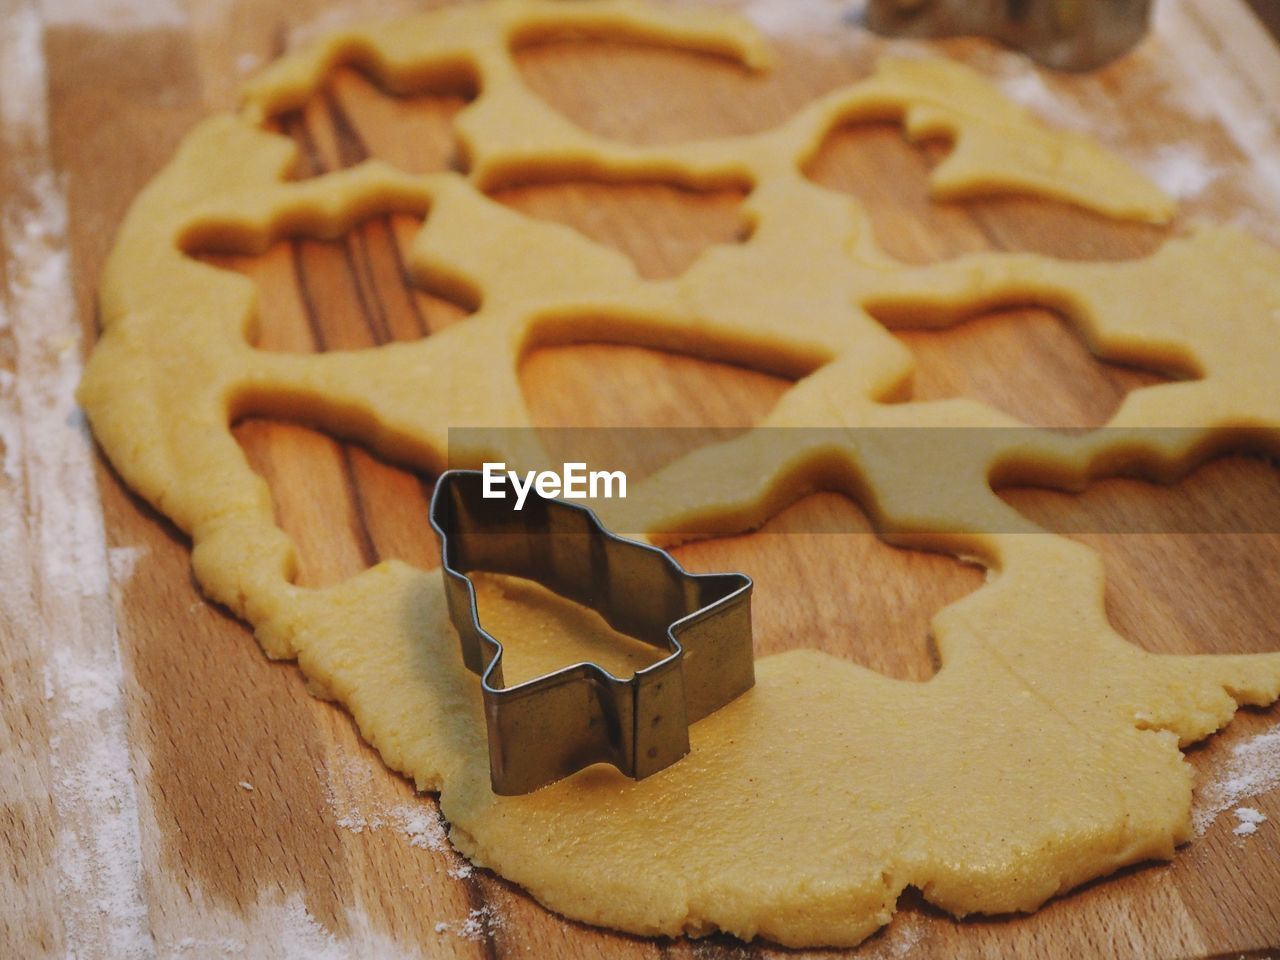 cookie, baked, food, food and drink, sweet food, still life, indoors, freshness, shape, preparation, star shape, dough, table, christmas, pastry cutter, close-up, no people, design, holiday, high angle view, gingerbread cookie, temptation, preparing food